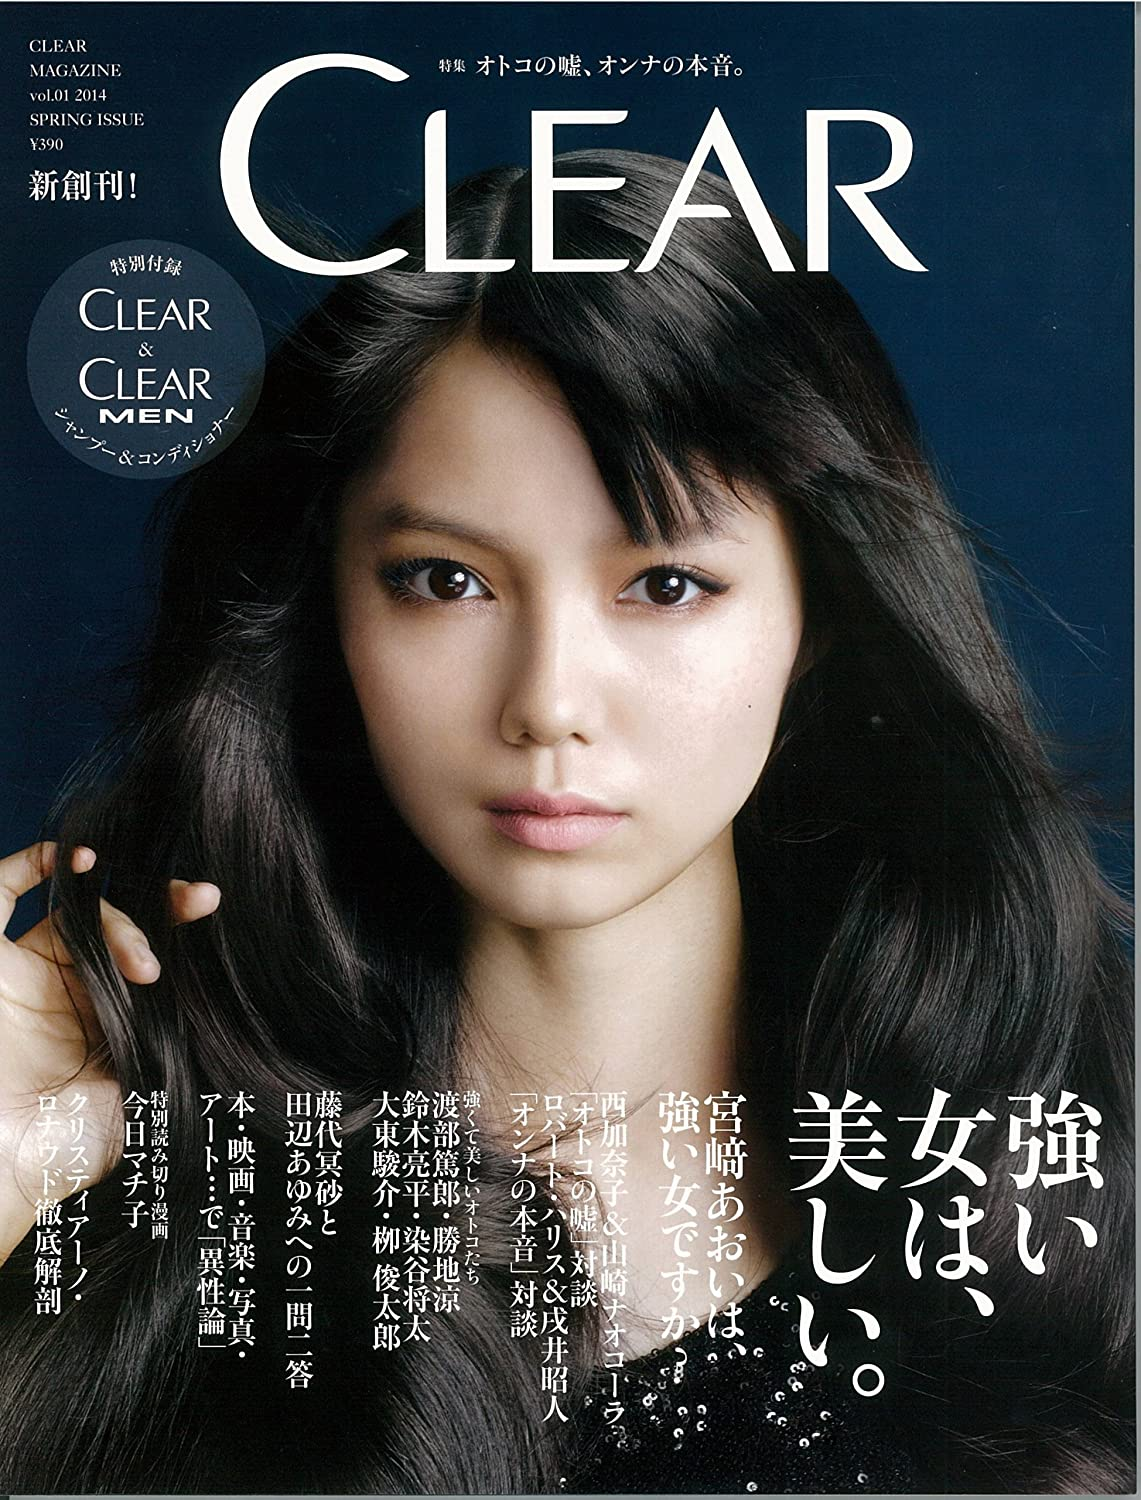 CLEAR MAGAZINE vol.1 2014 SPRING ISSUE ([バラエティ])